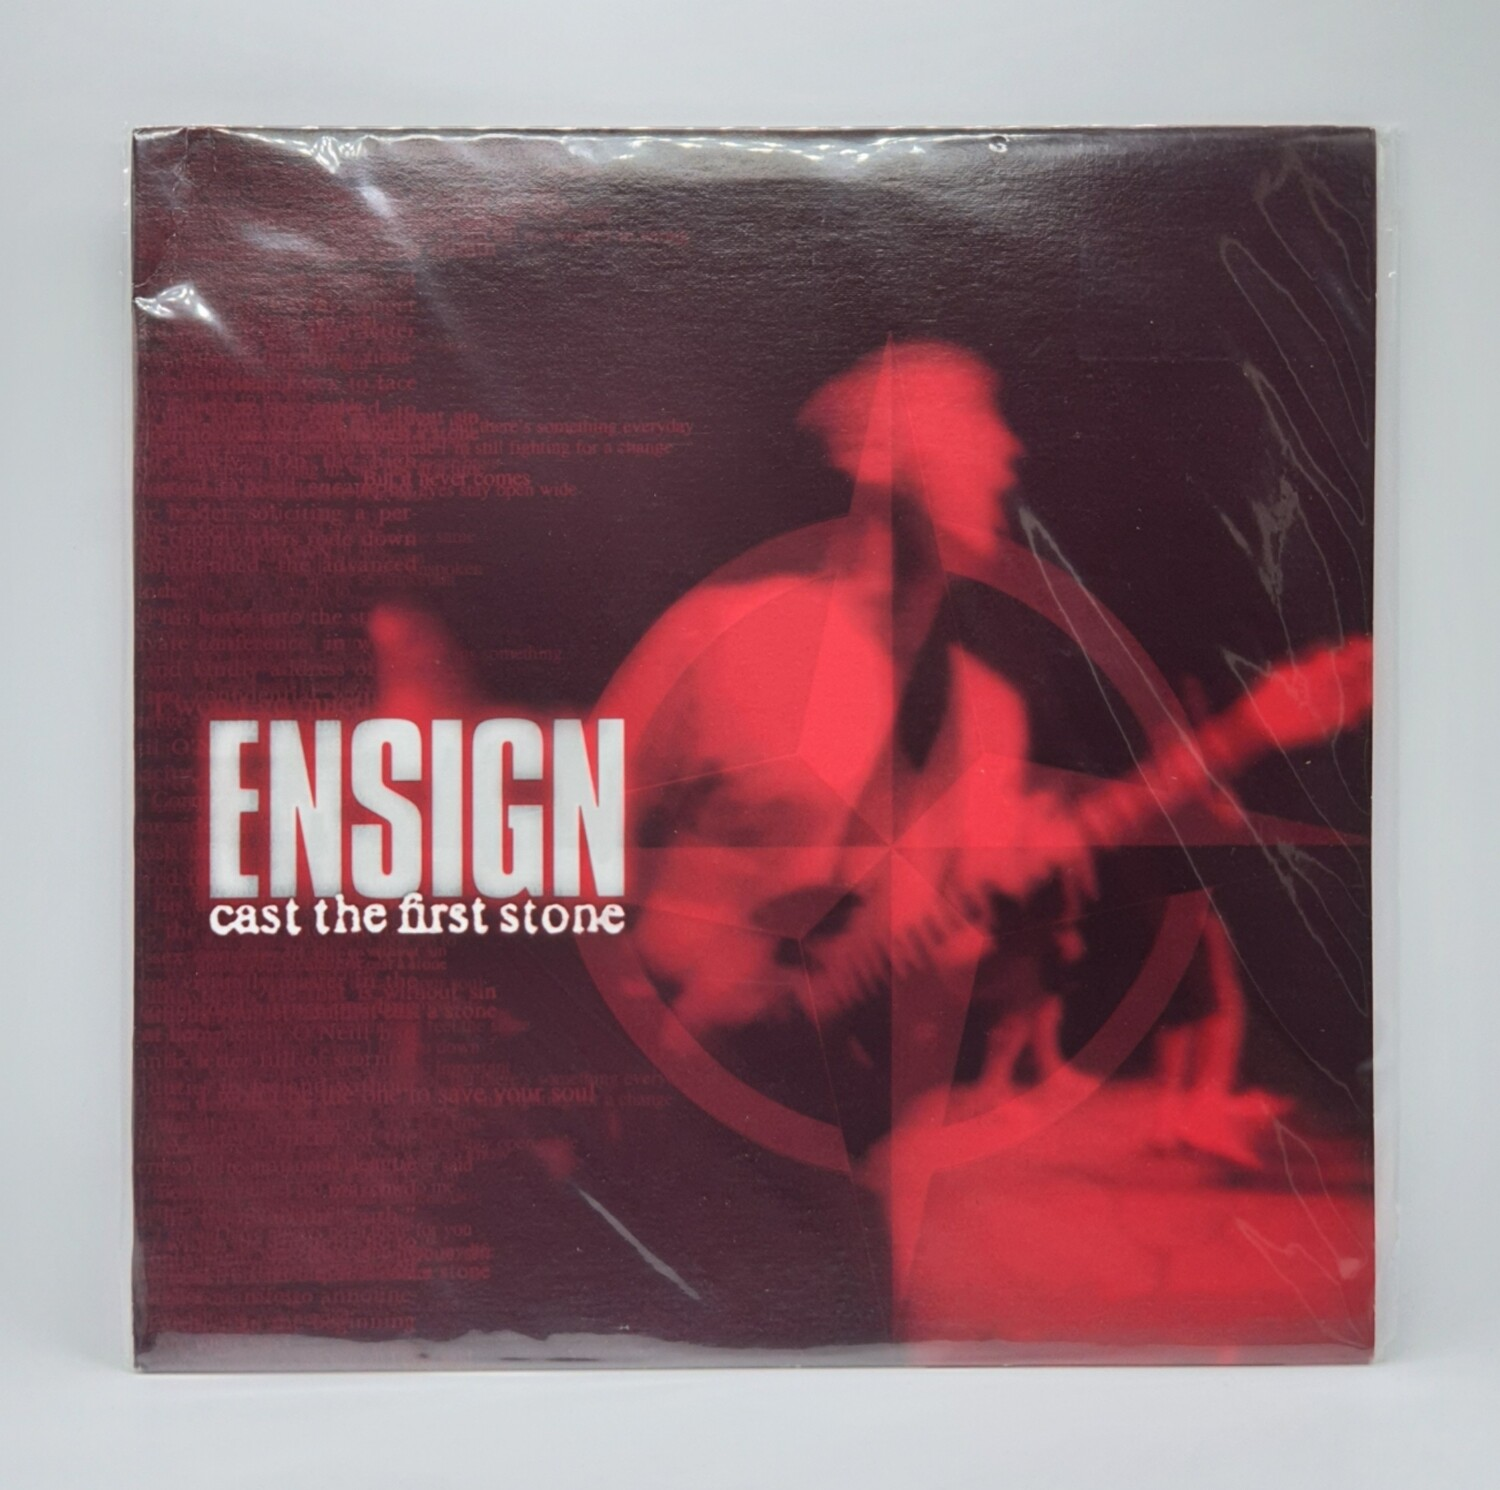 ENSIGN -CAST THE FIRST STONE- LP (RED VINYL)